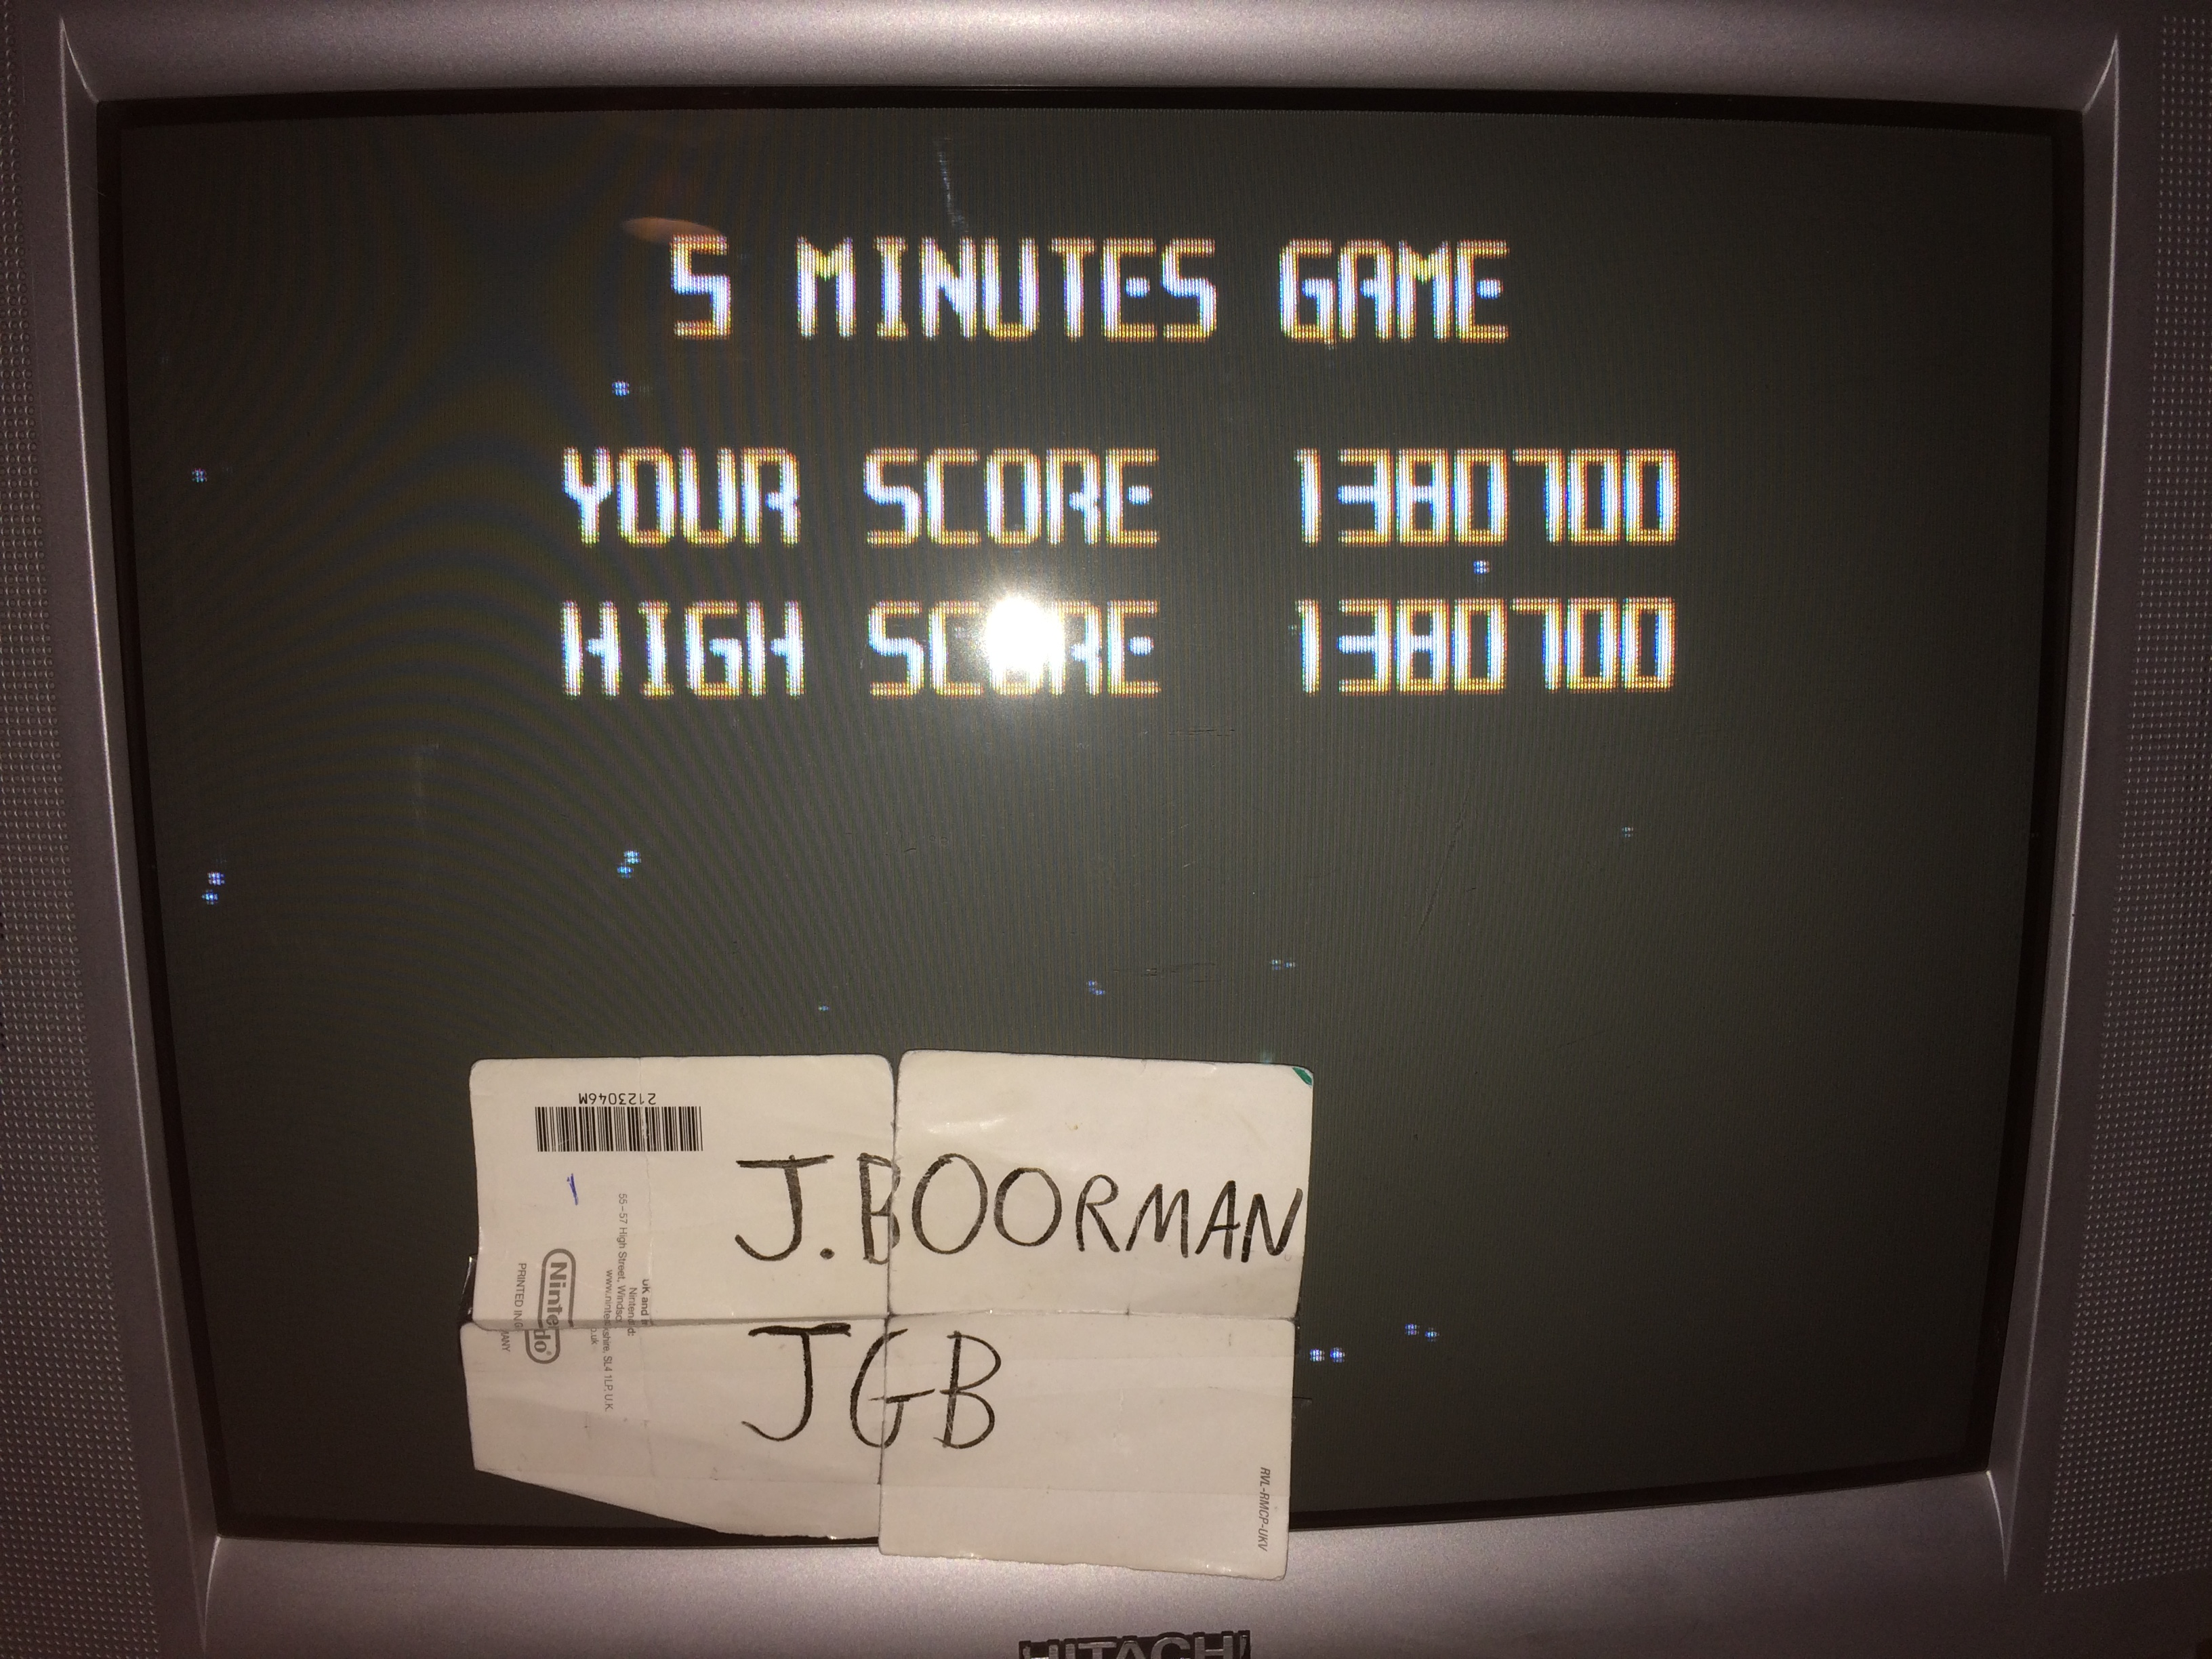 JBoorman: Super Star Soldier [5 Minute Caravan Mode] (Wii Virtual Console: TurboGrafx-16) 1,380,700 points on 2018-02-17 17:41:41